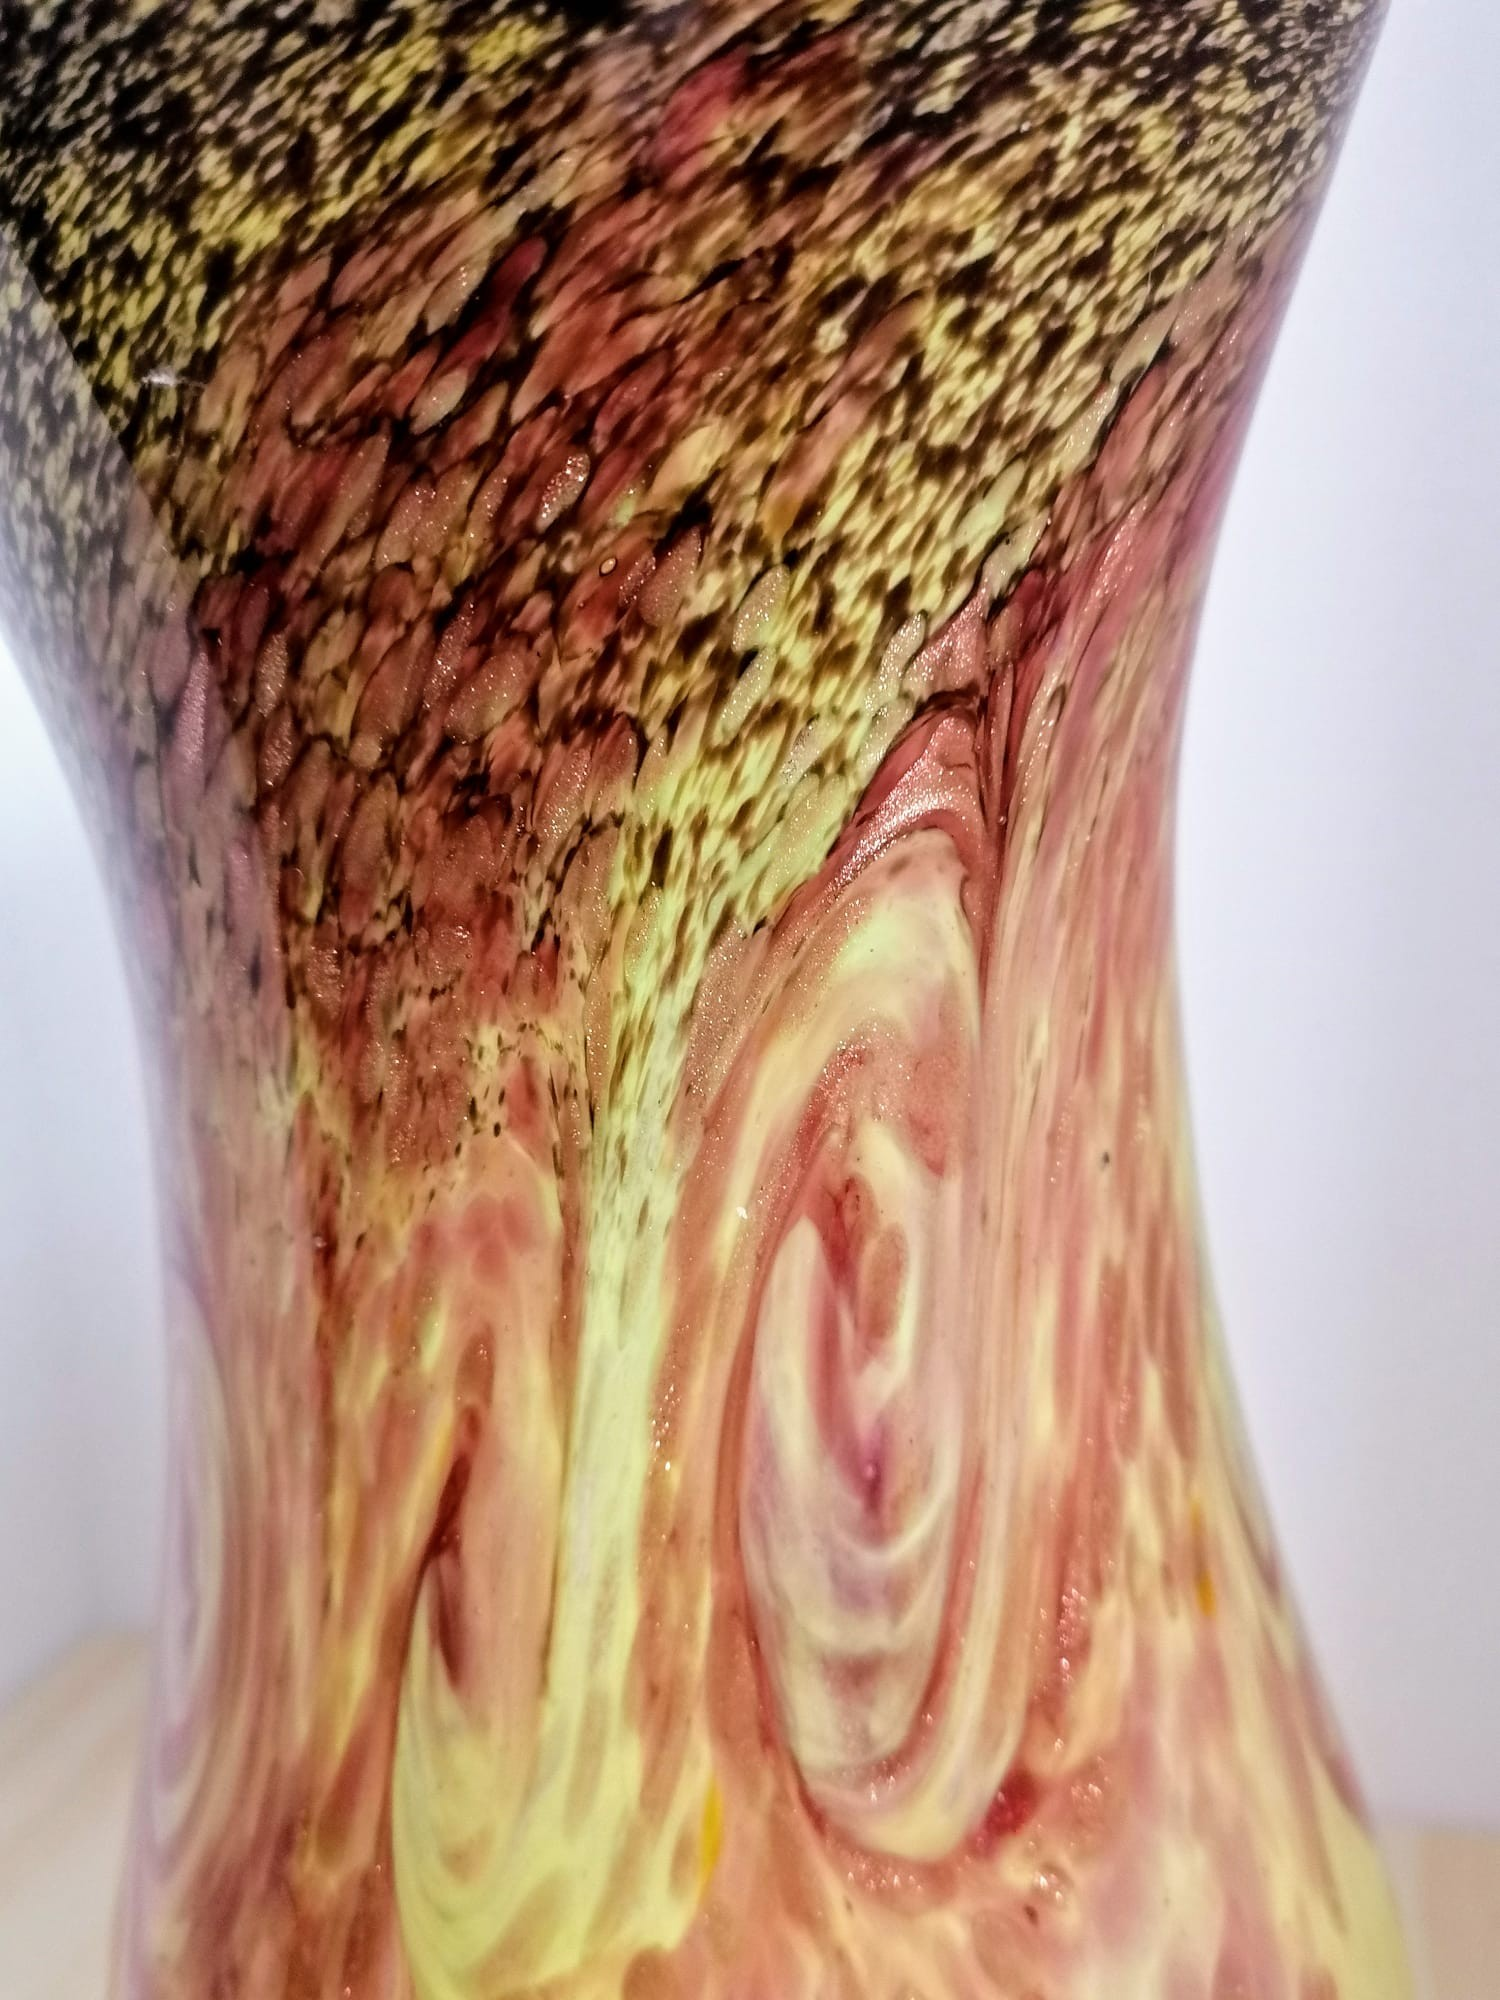 Large Strathearn scottish glass vase in beautiful colourations of yellow, red, brown with gold fleck - Image 2 of 2